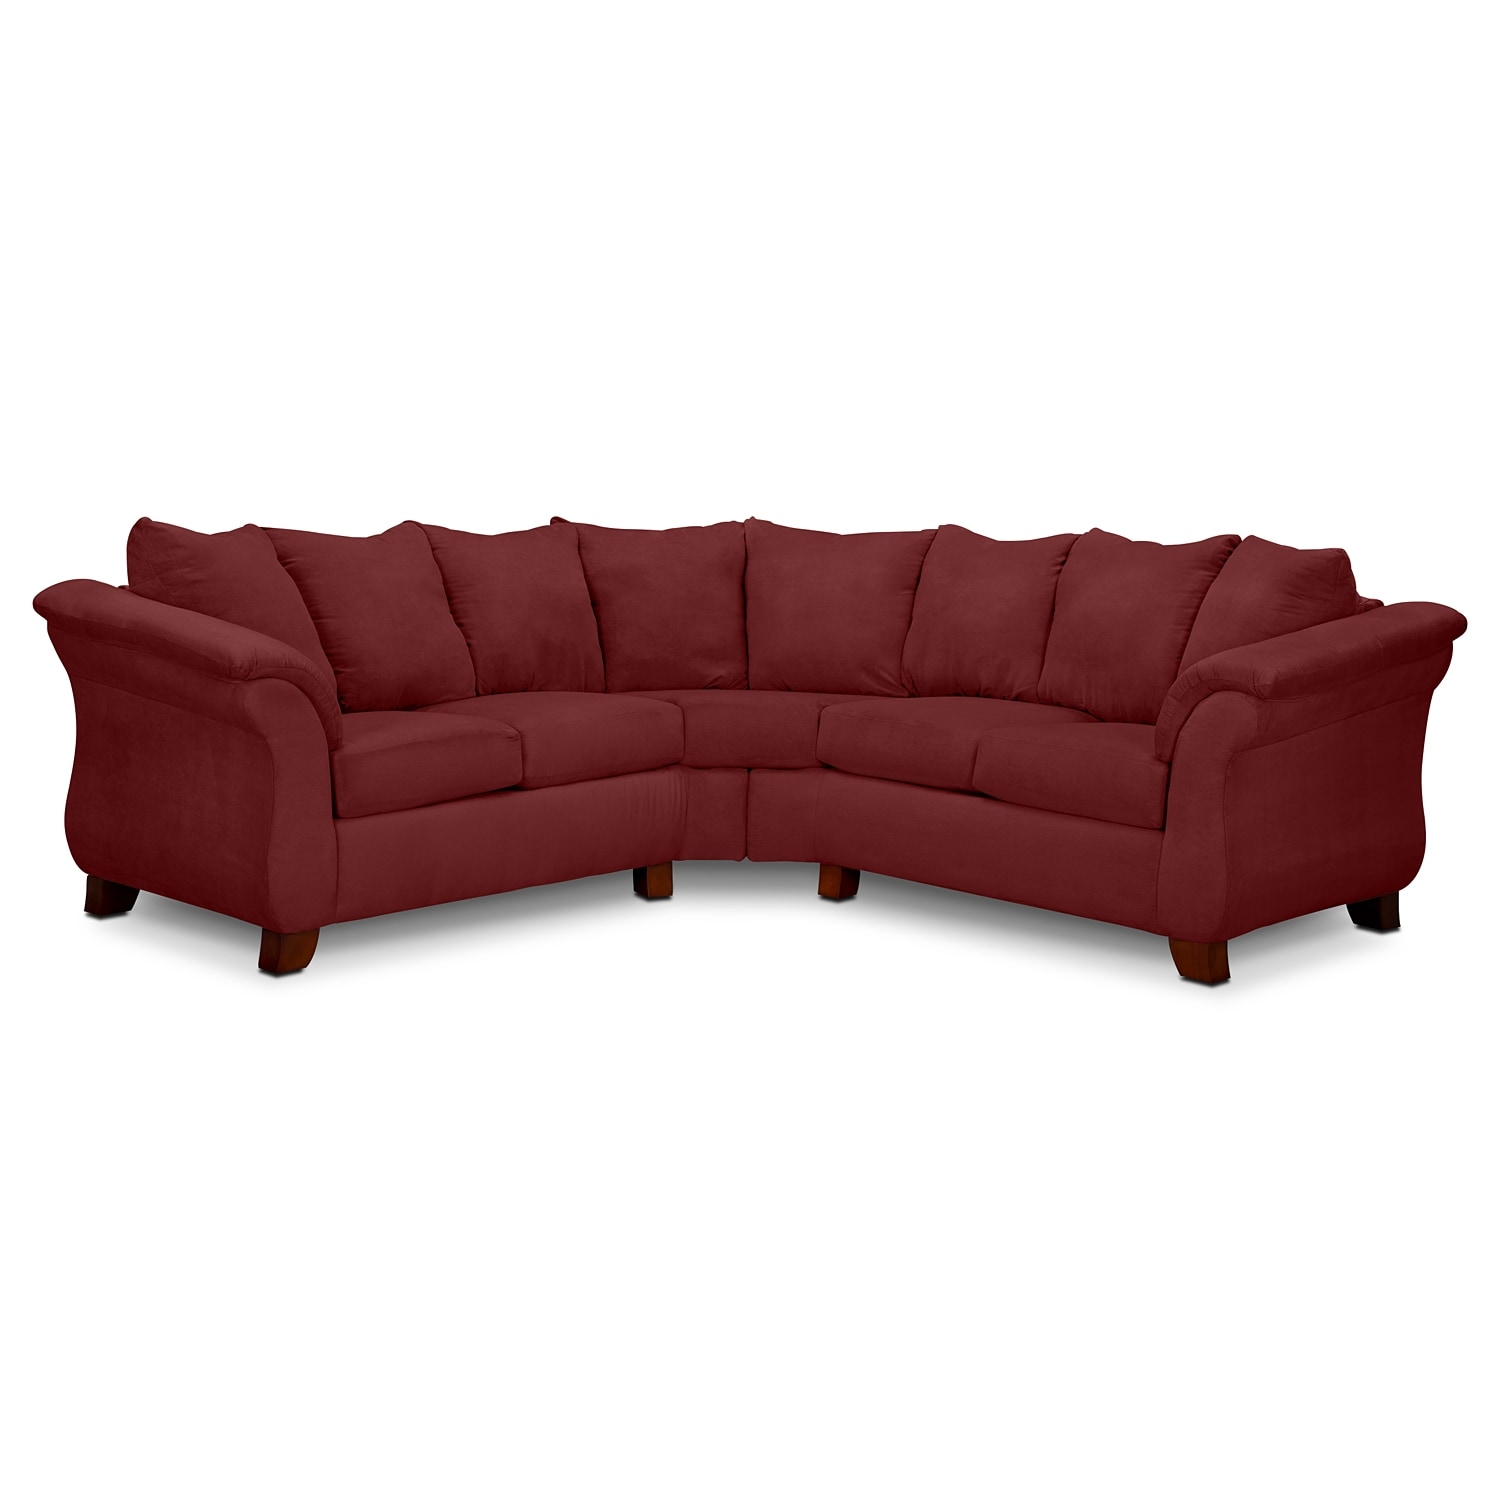 On Sale Furniture Value City Furniture Value City Furniture - Sofa city evansville